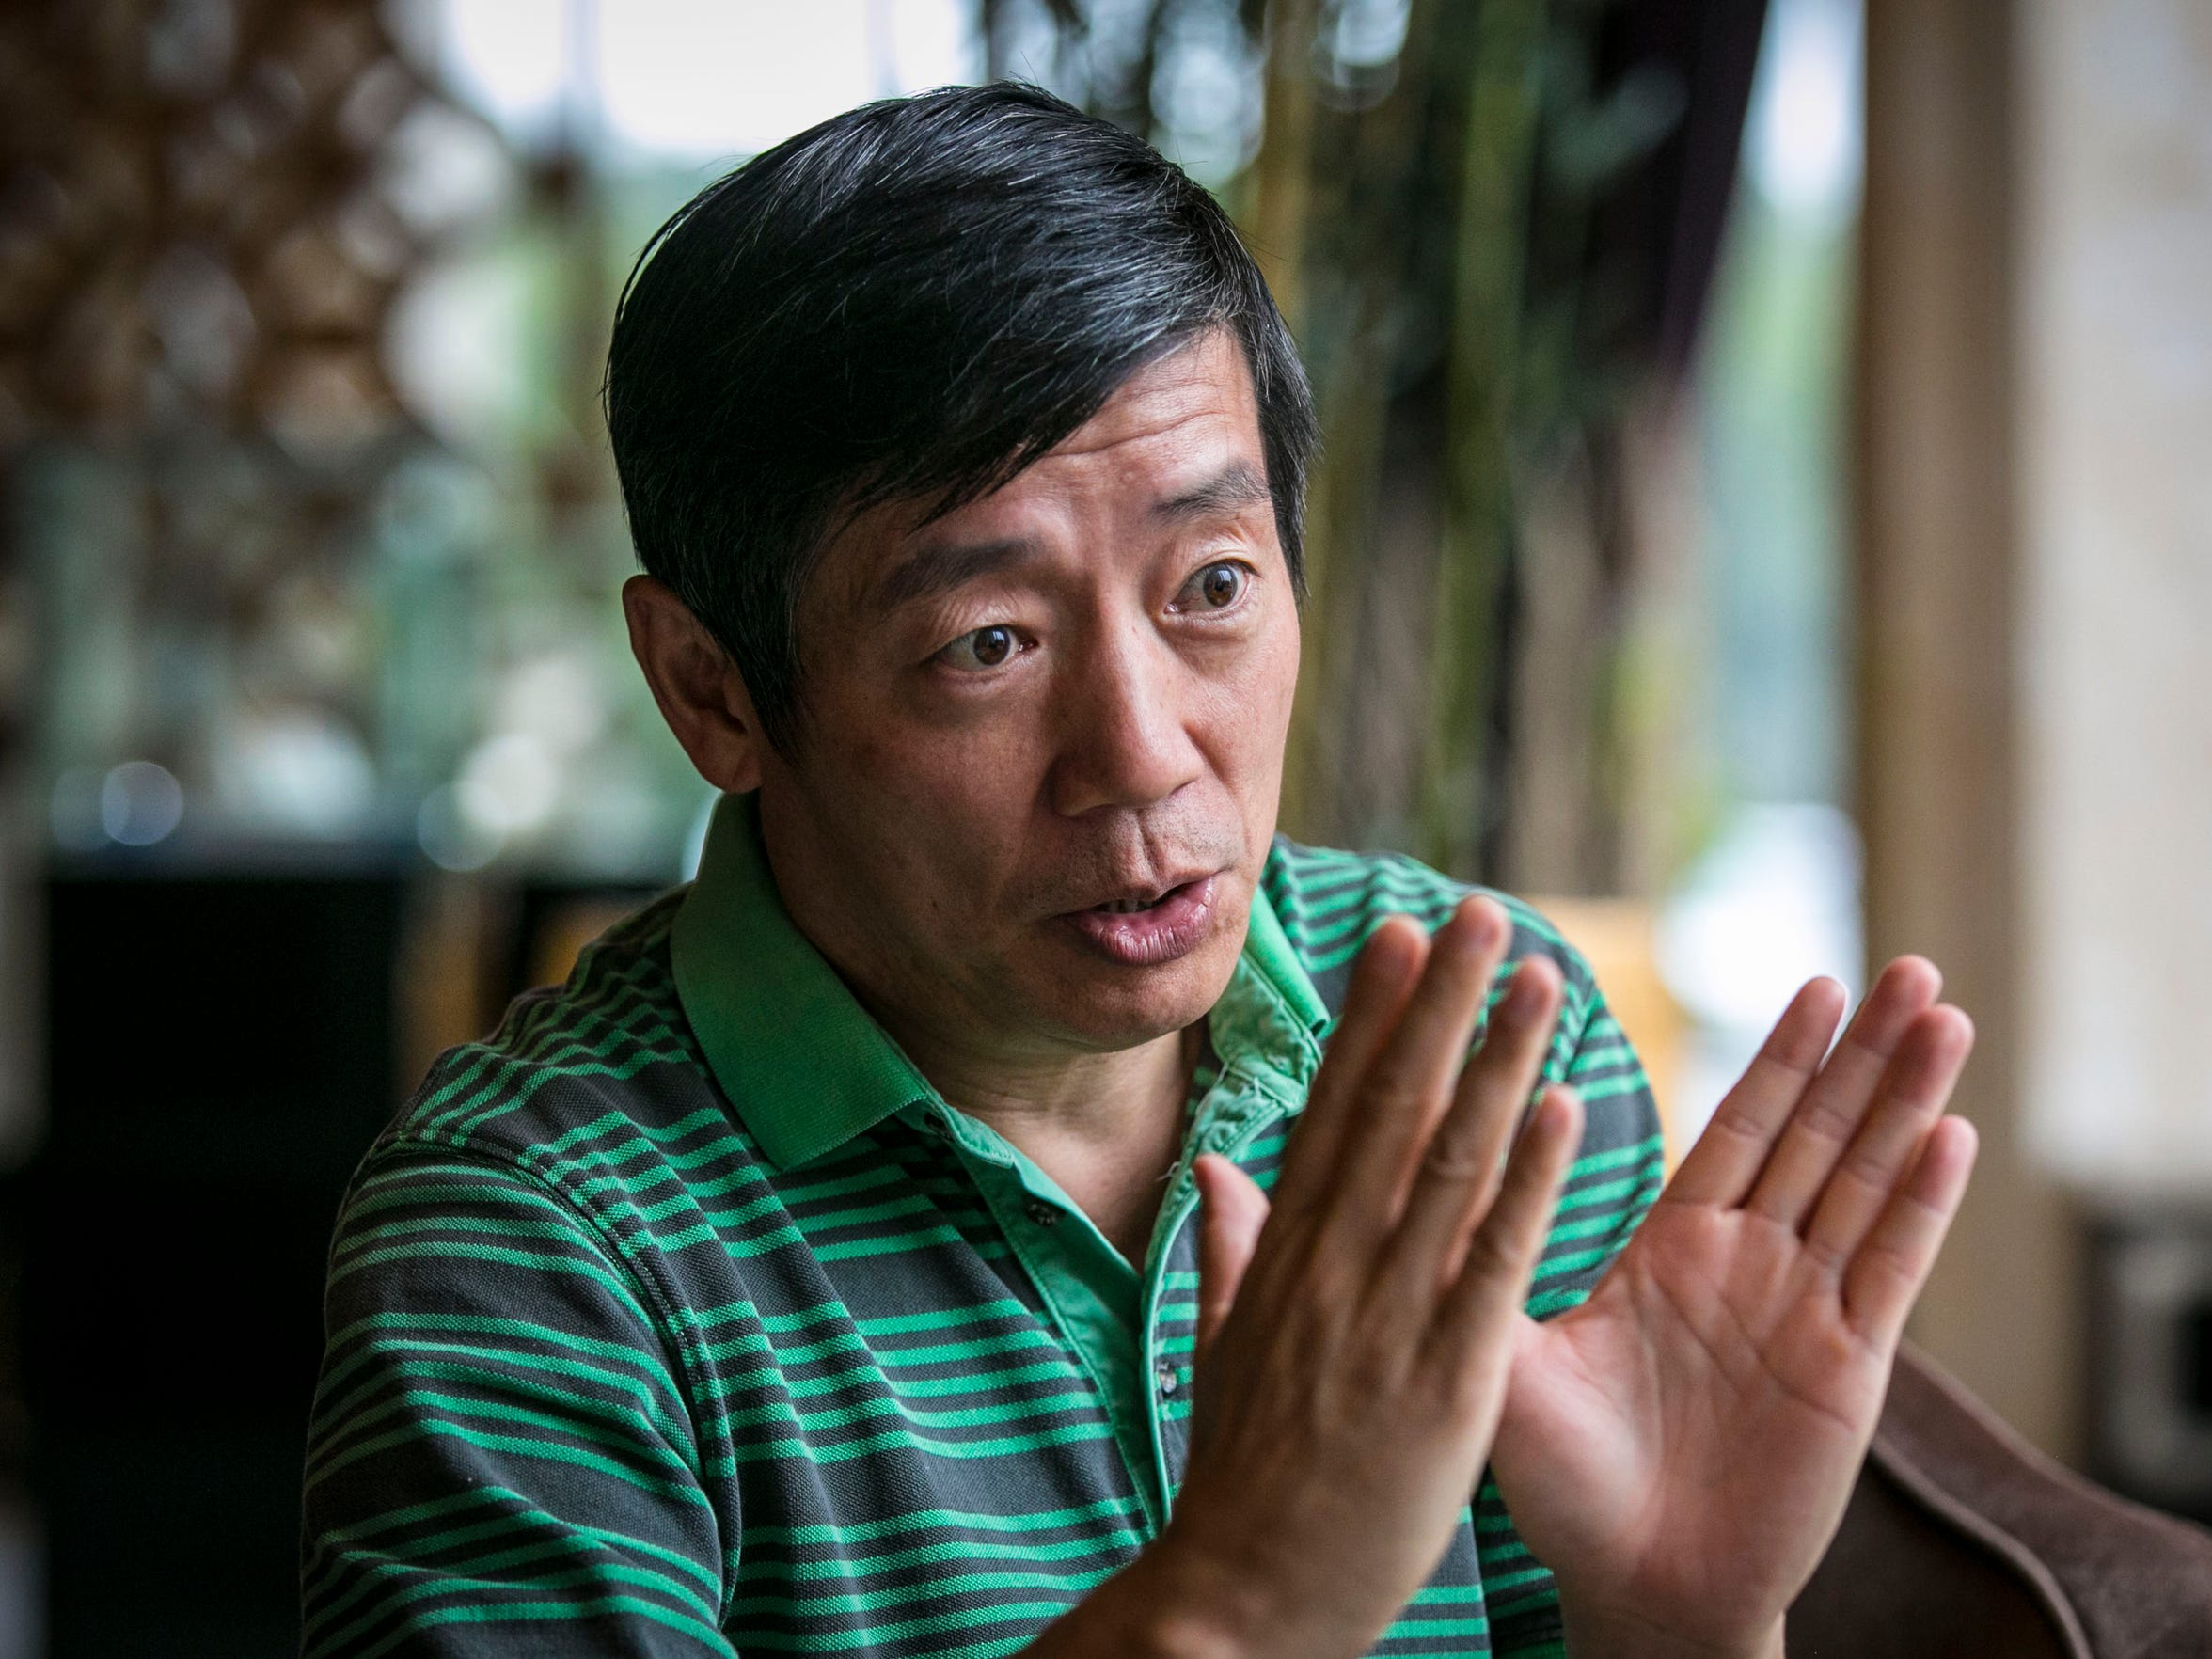 David Liu runs Gansu Hengji Seed Co. and is helping